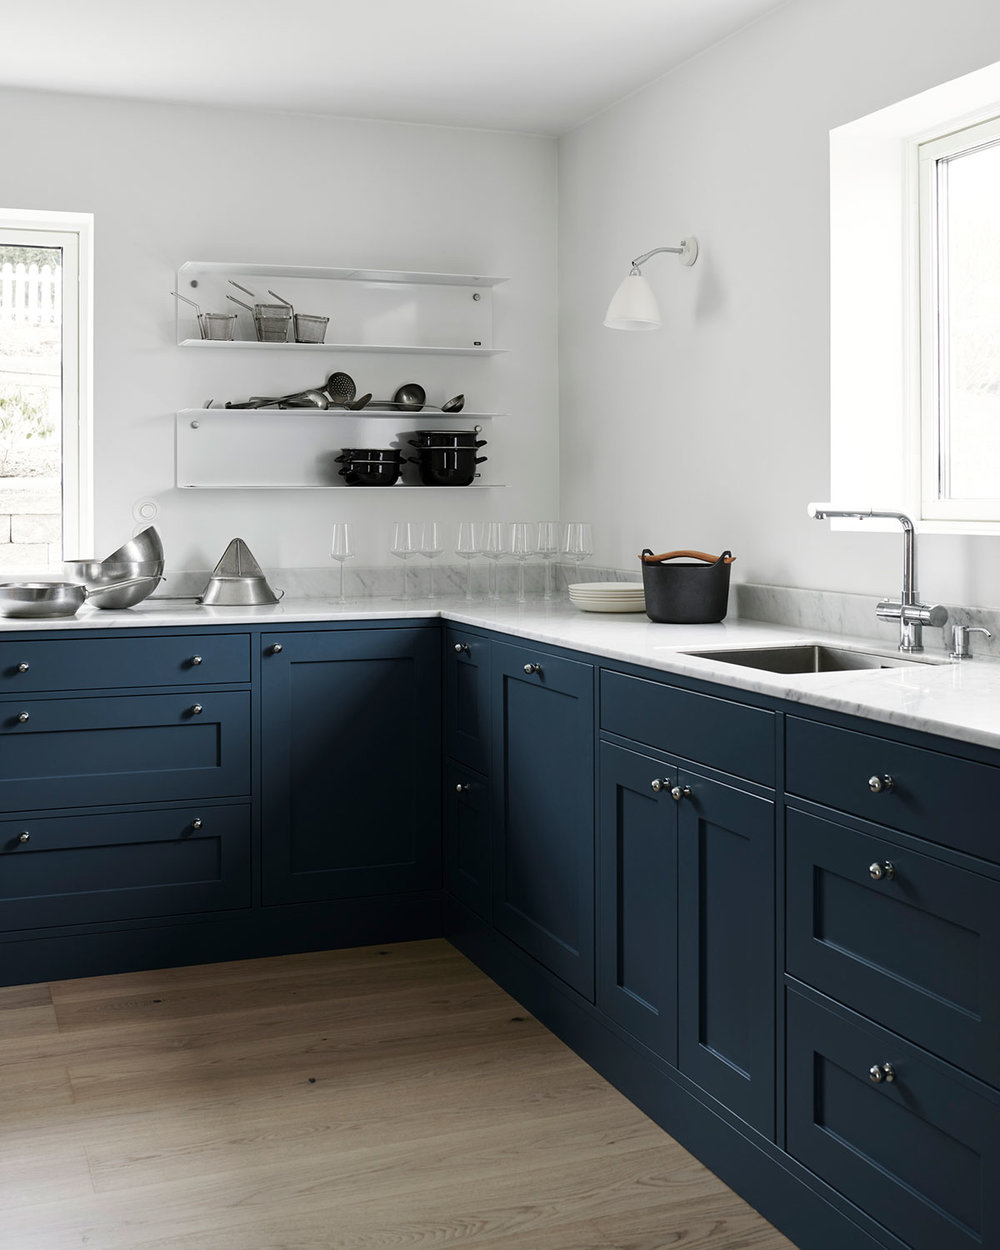 shaker kitchen design in blue, Vipp and white Carrara marble and Gubi lamp